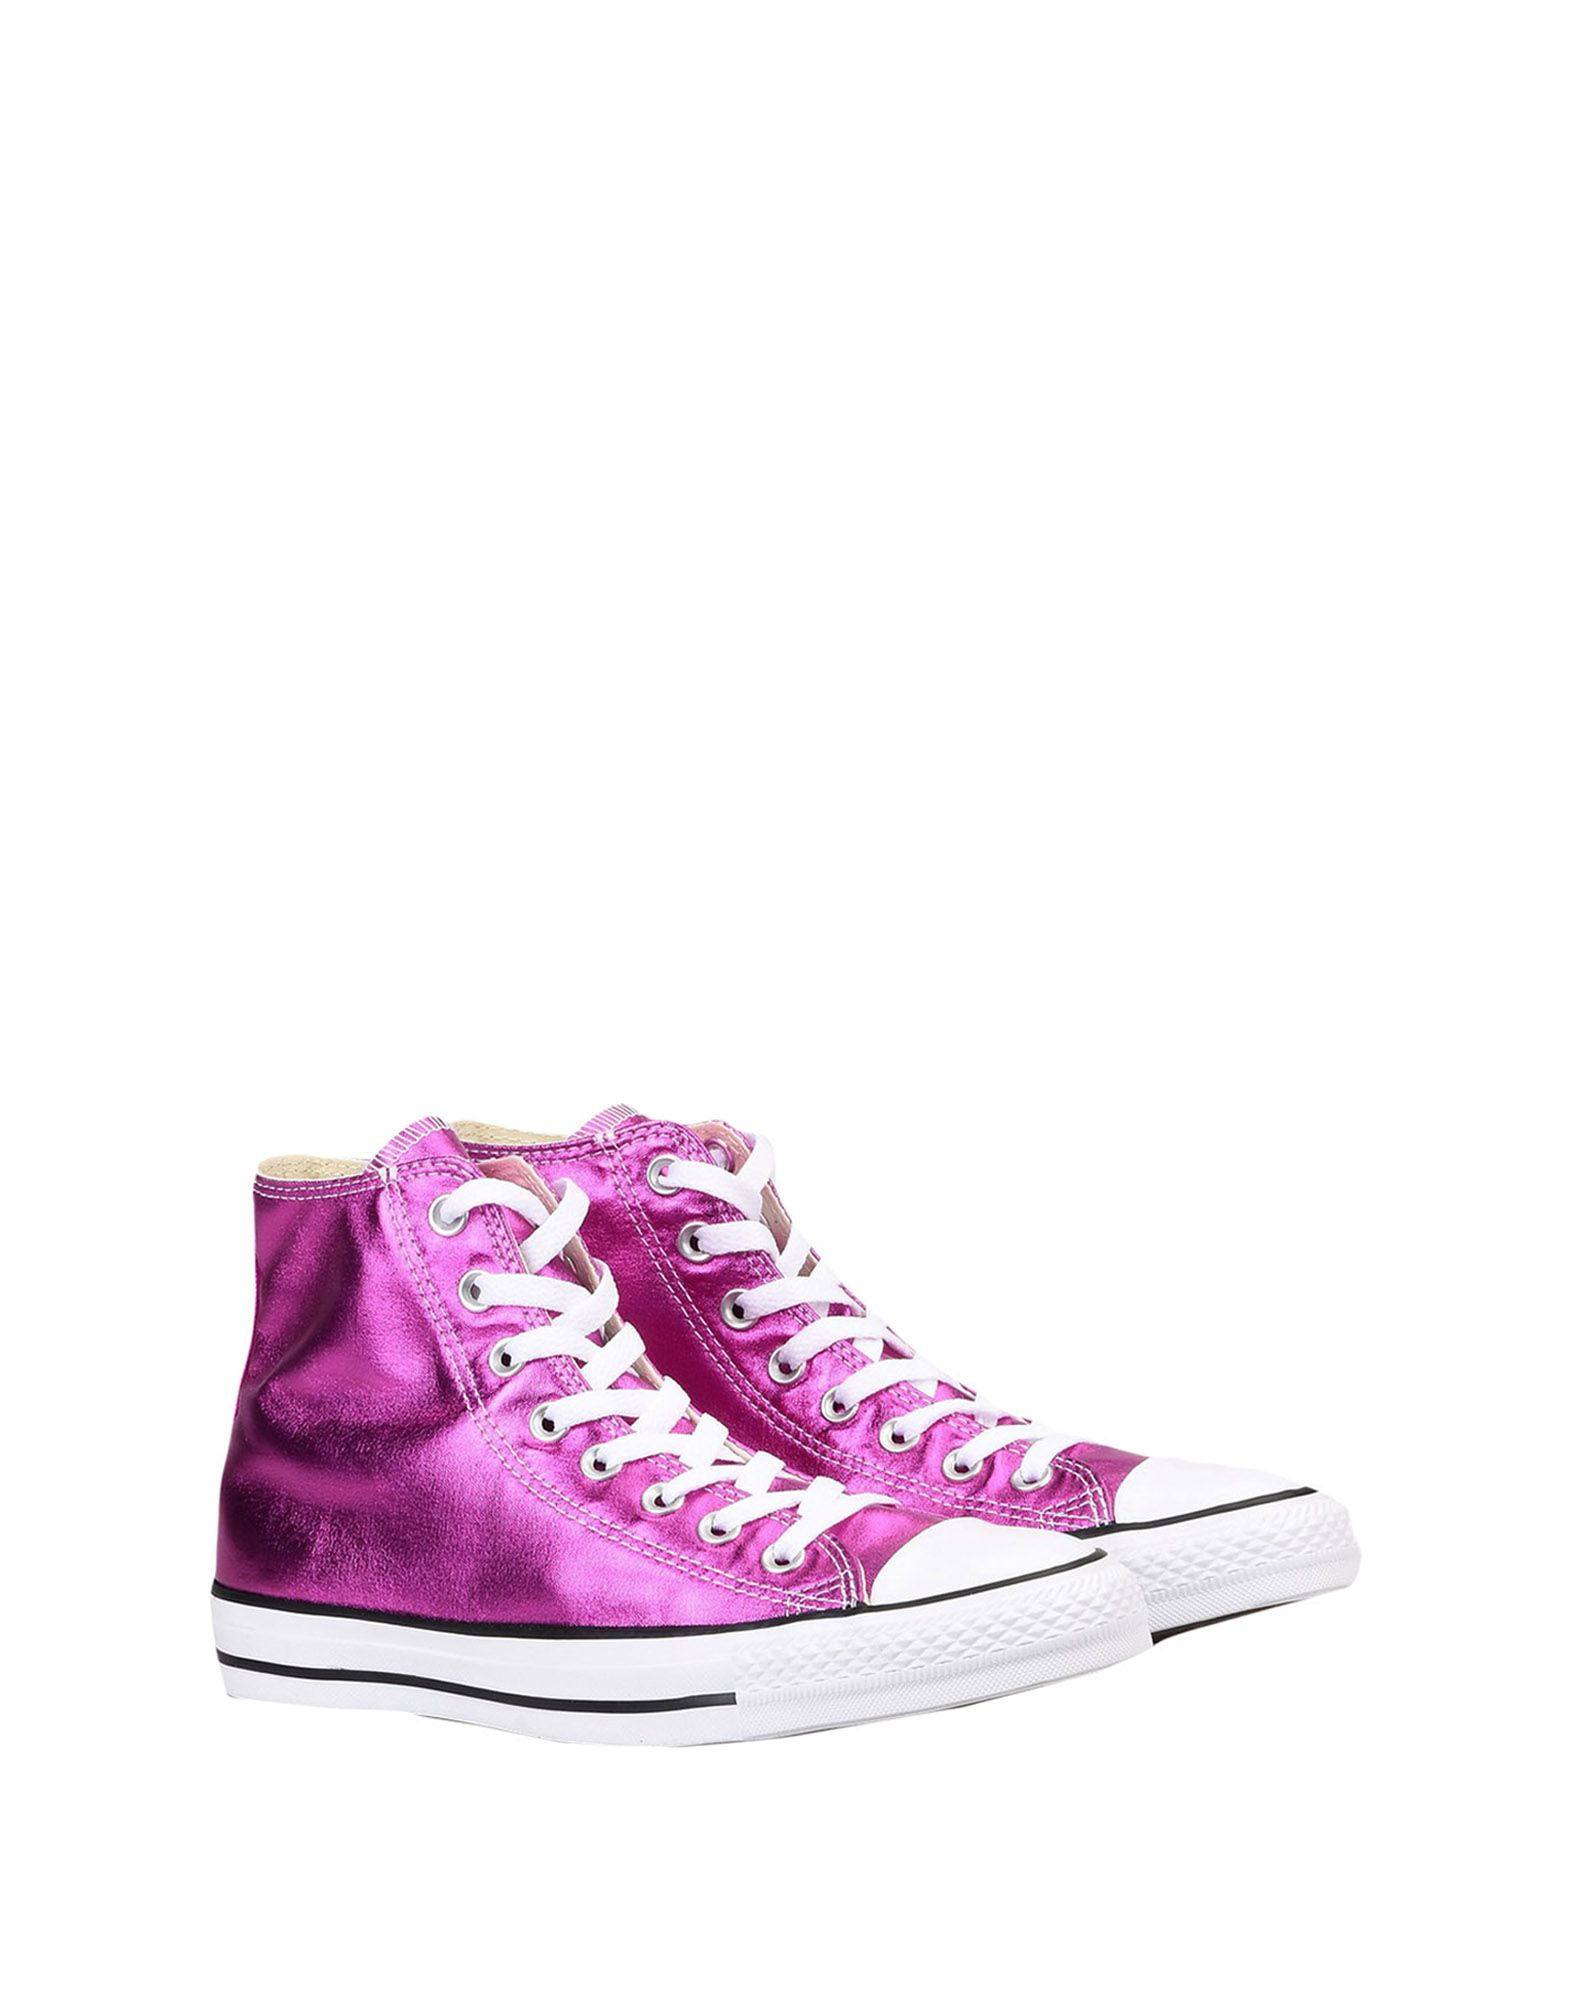 Sneakers Converse All Star Ct As Hi Canvas Metallic - Femme - Sneakers Converse All Star sur